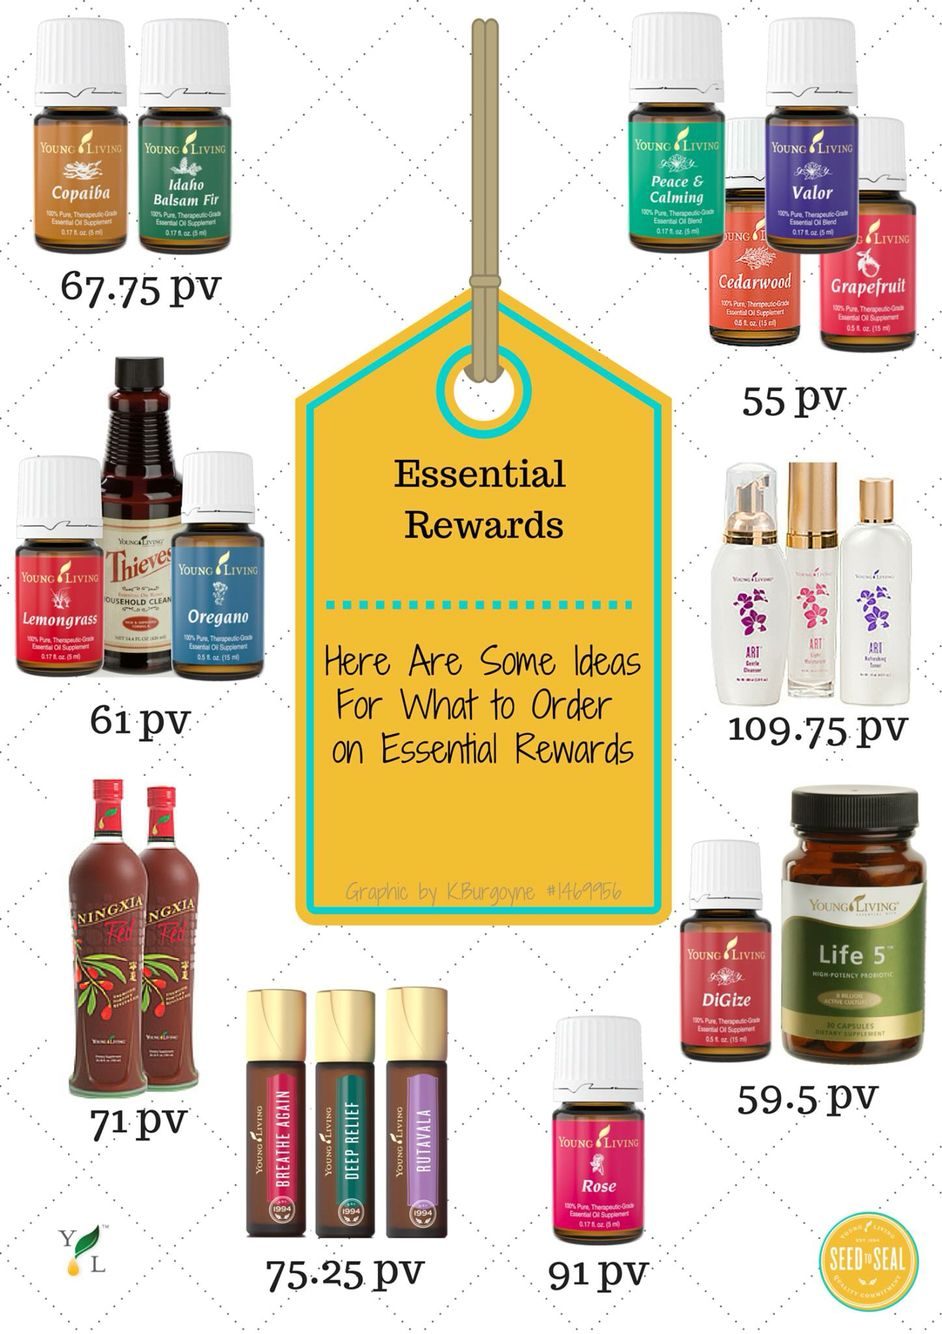 A few ideas for what to order when you join Essential Rewards   http://yl.pe/hpf